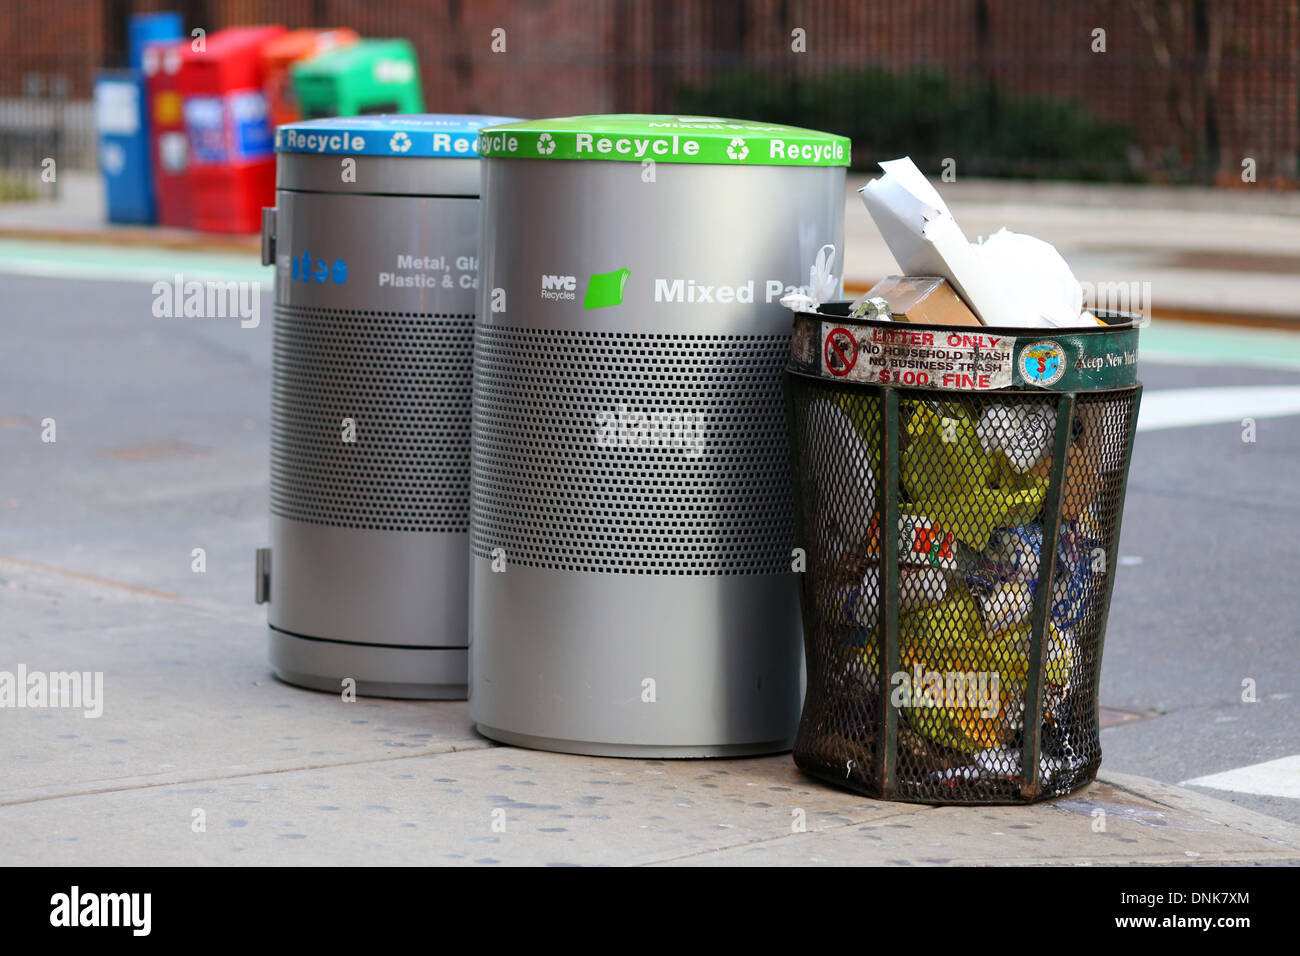 NYC garbage can and recycling bins for mixed paper, glass, metal, and plastics. - Stock Image